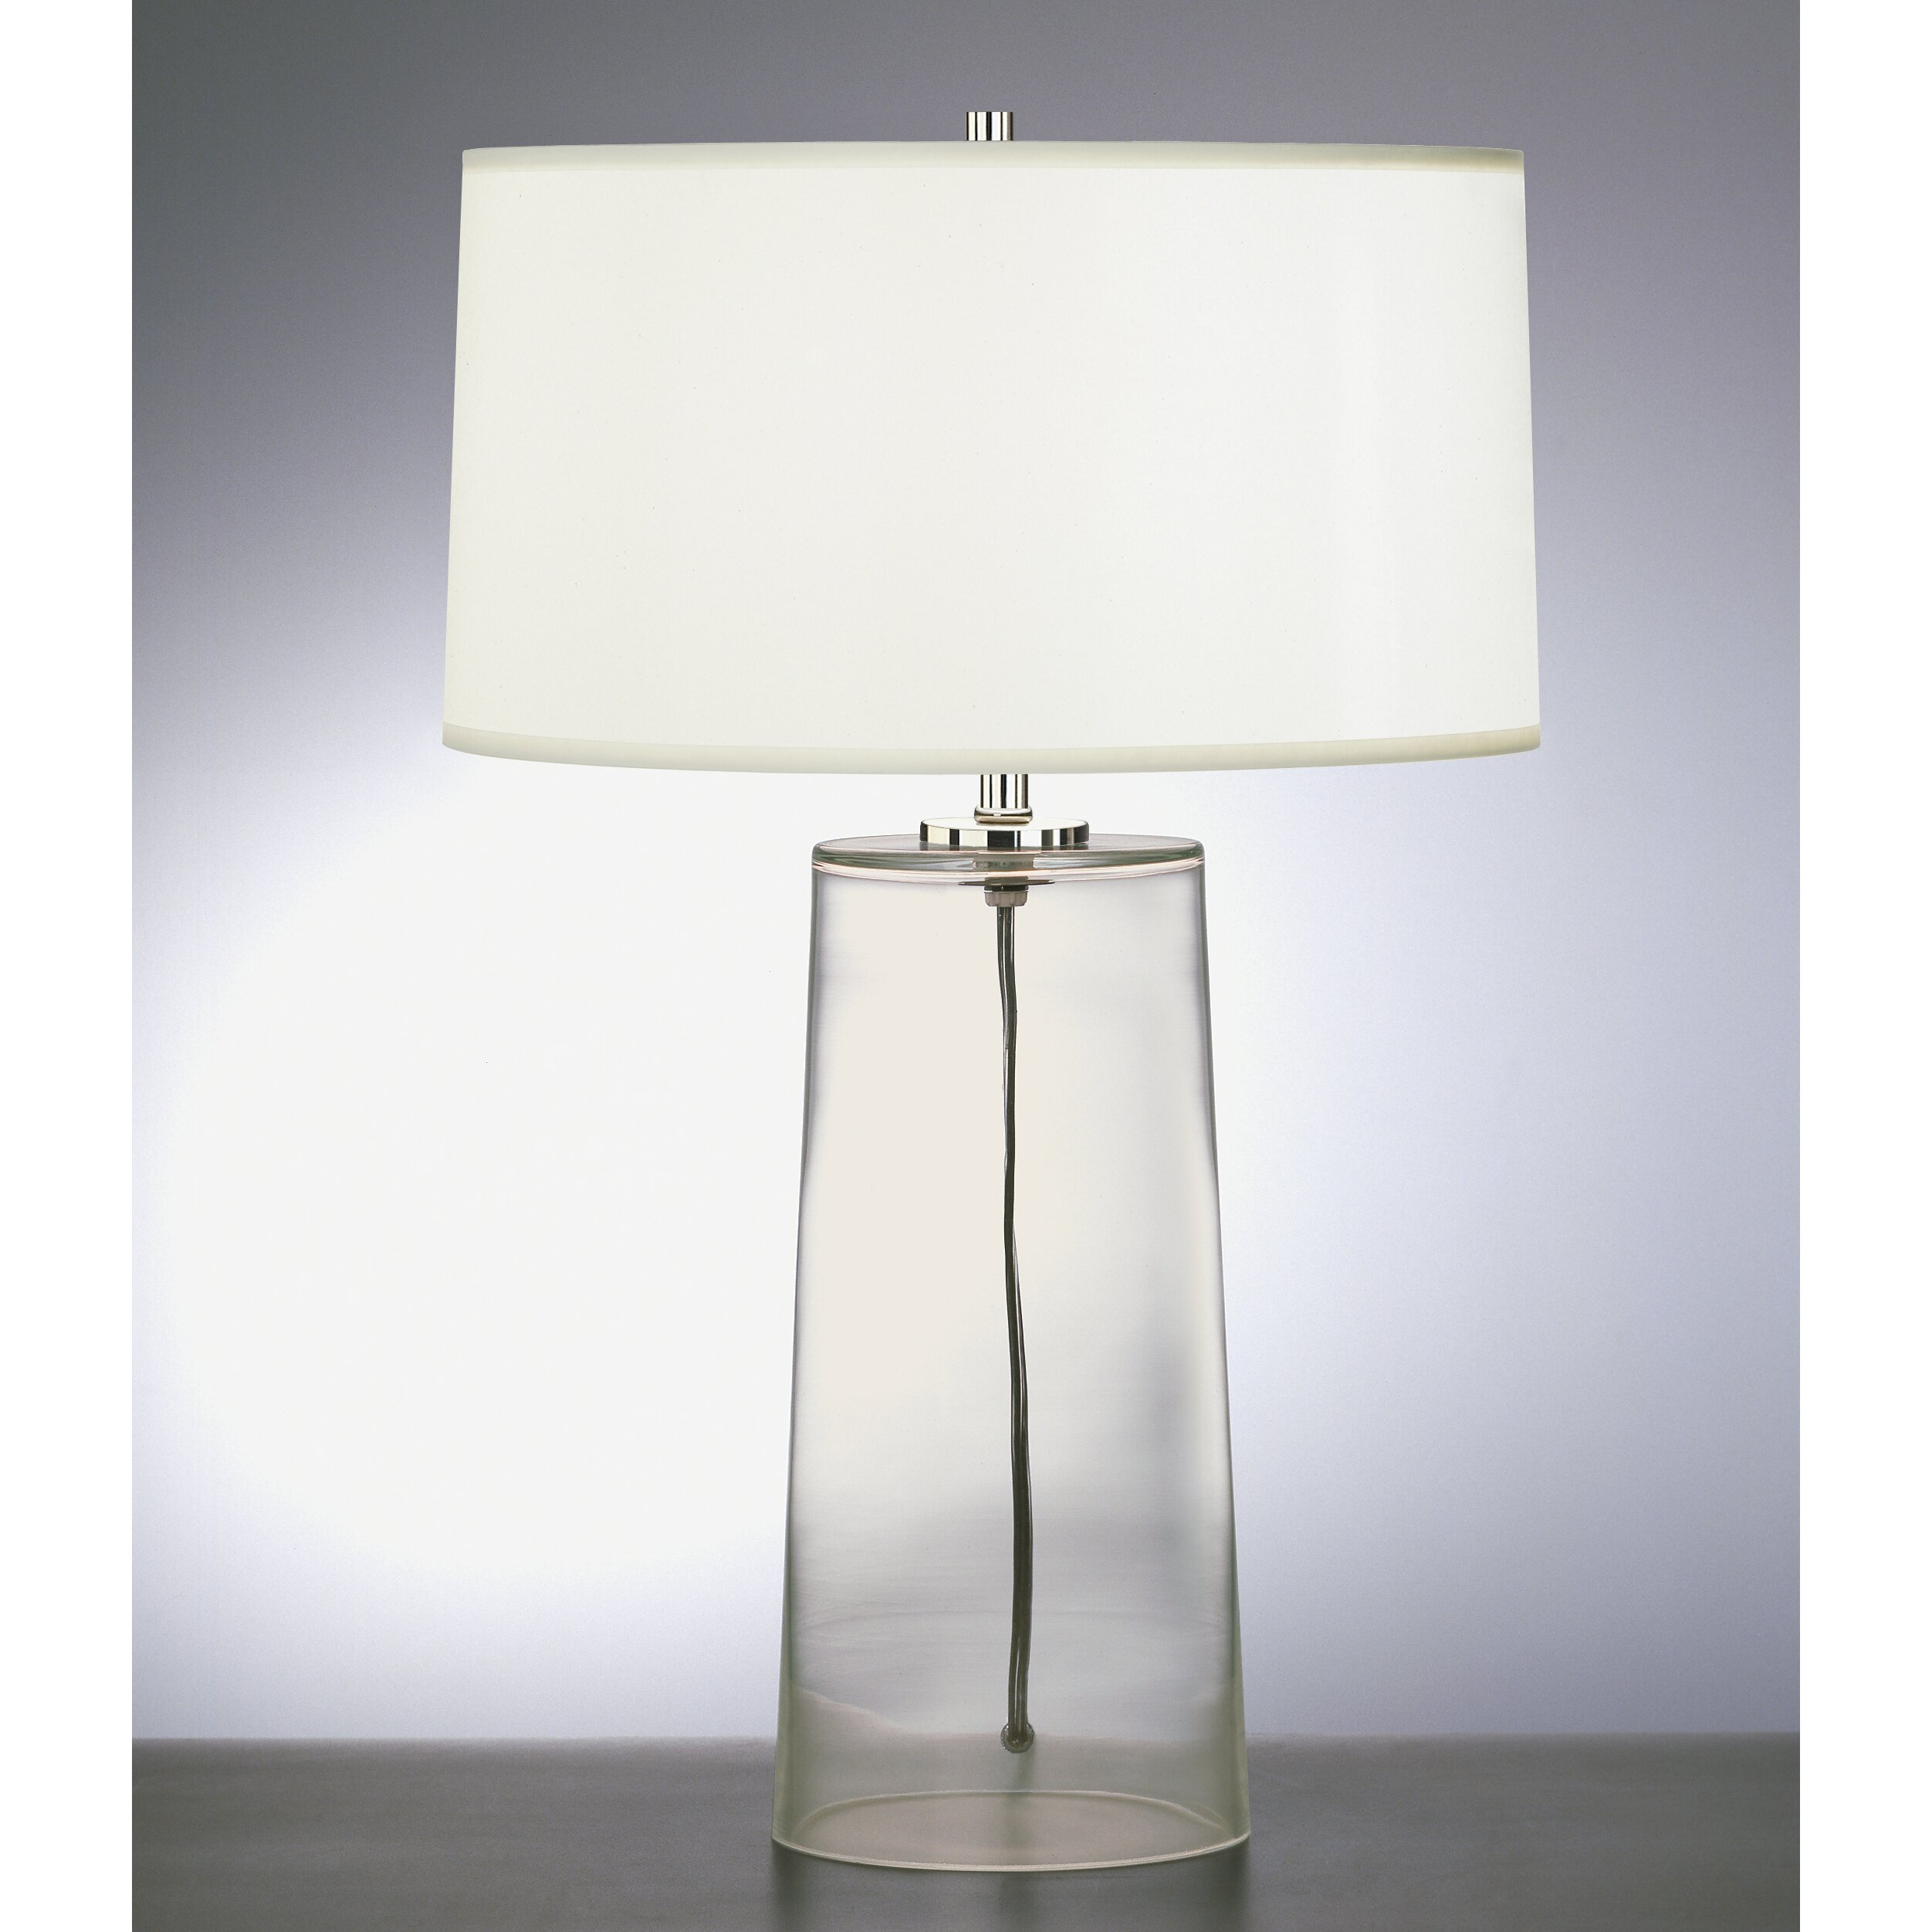 Robert Abbey Rico Espinet Olinda 22 75 Quot Table Lamp